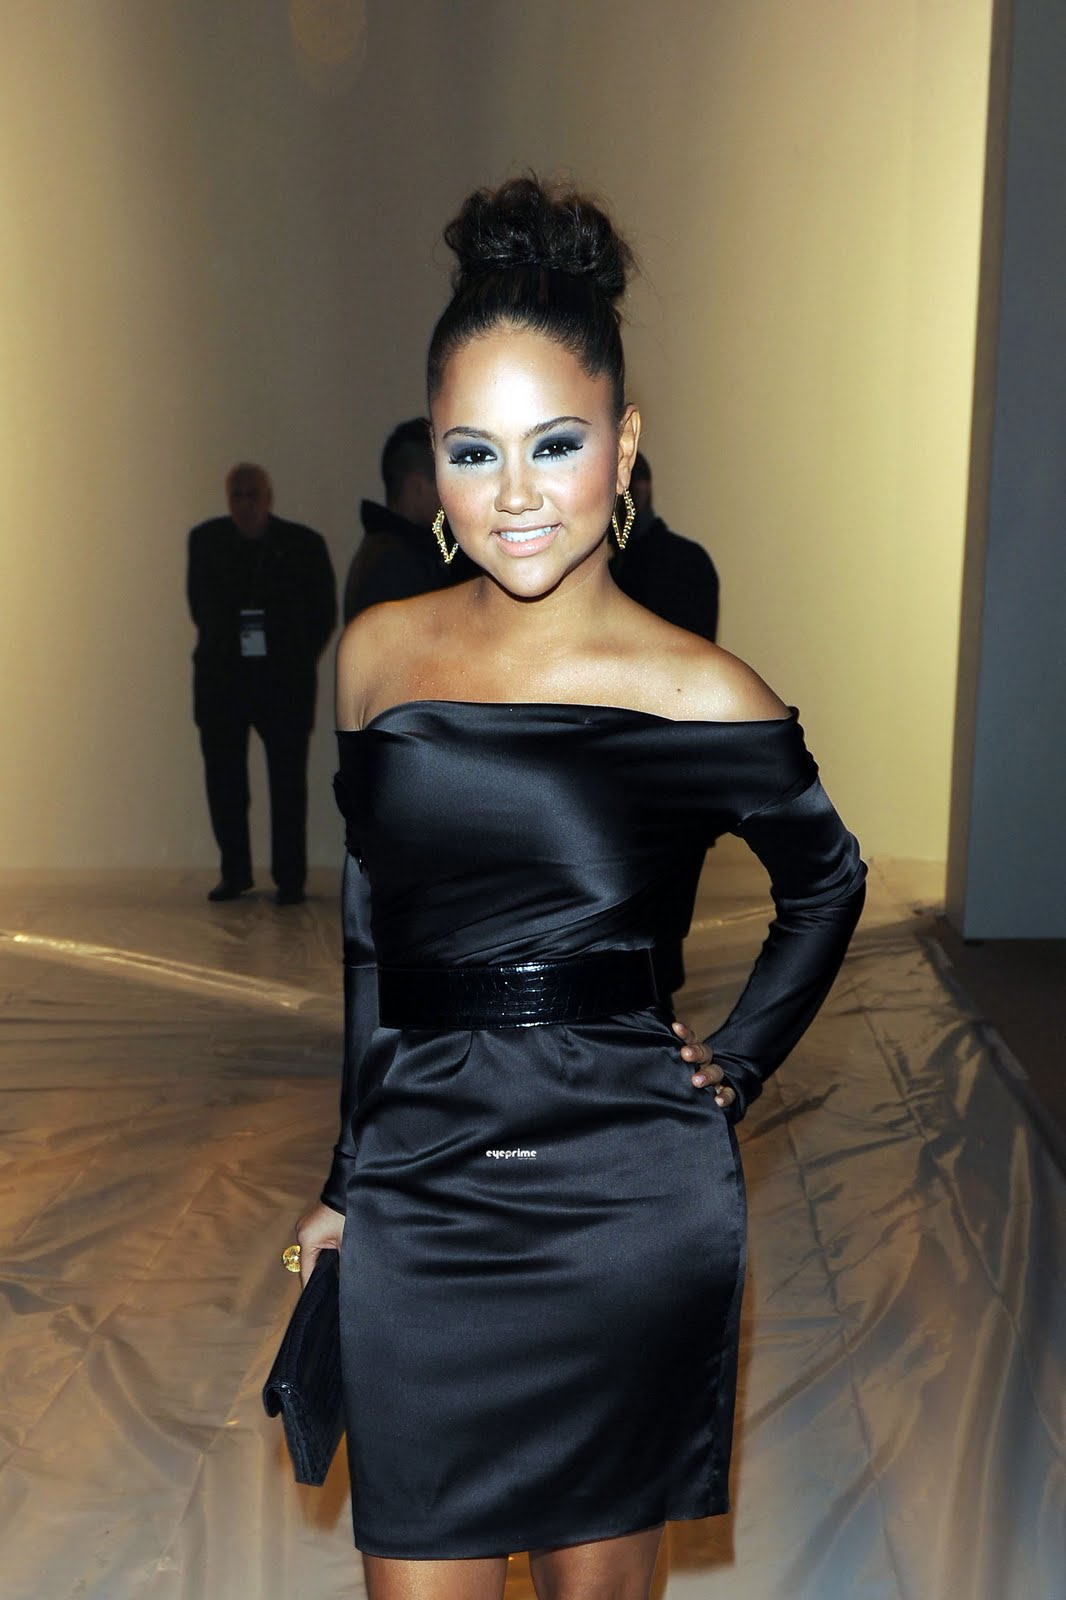 Wallpaper Desktop Fall Wallpaper World Kat Deluna Photo The Christian Siriano